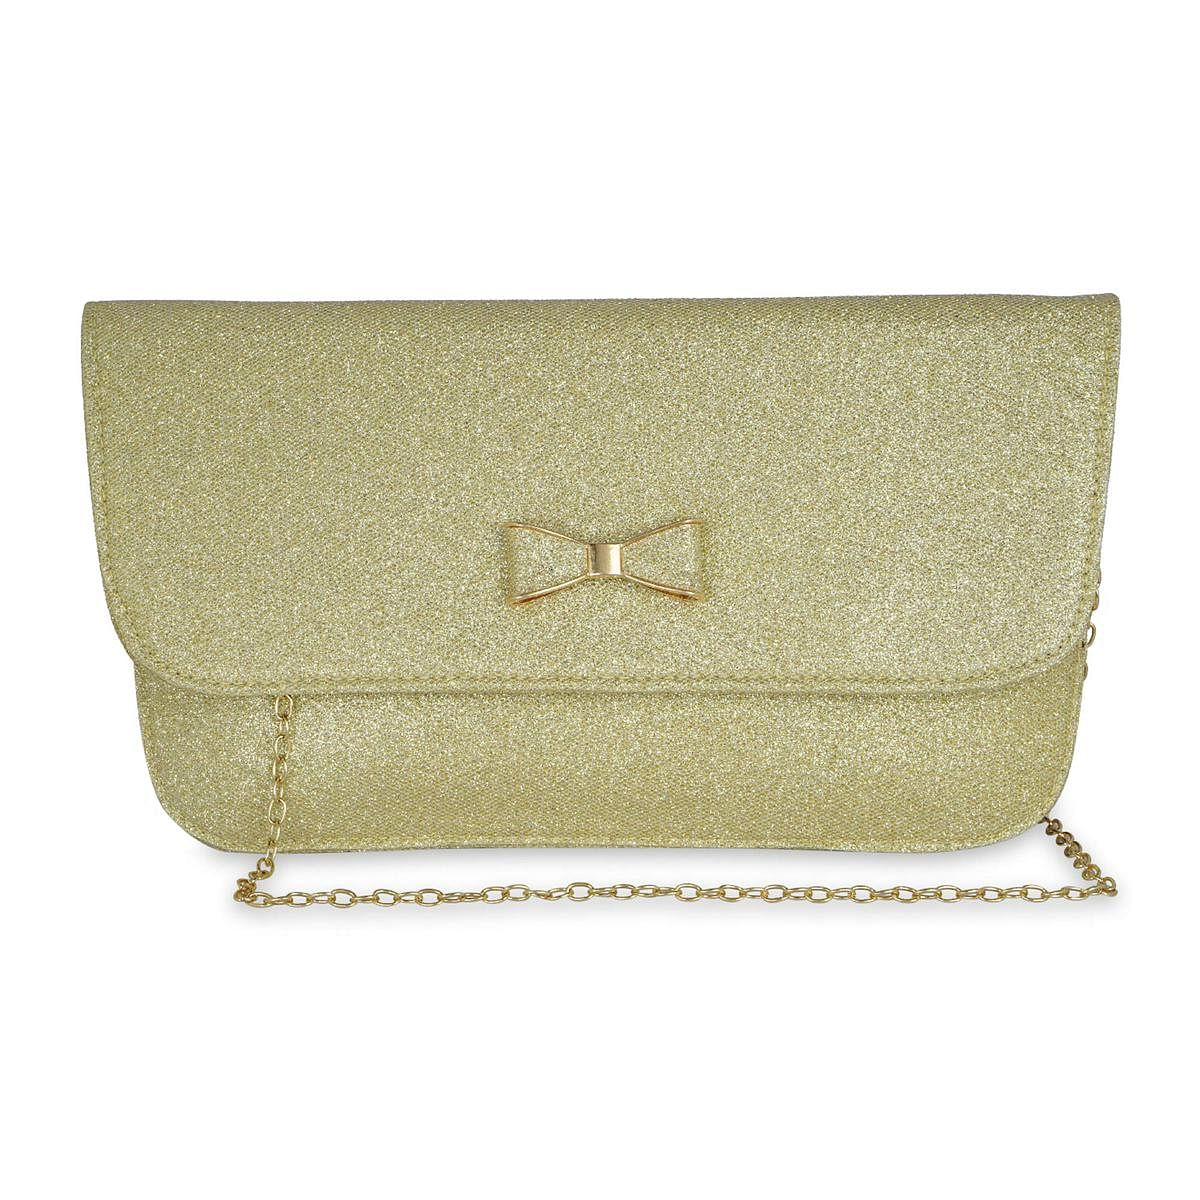 NFI Essentials - Wallet For Girl's Stylish Clutch